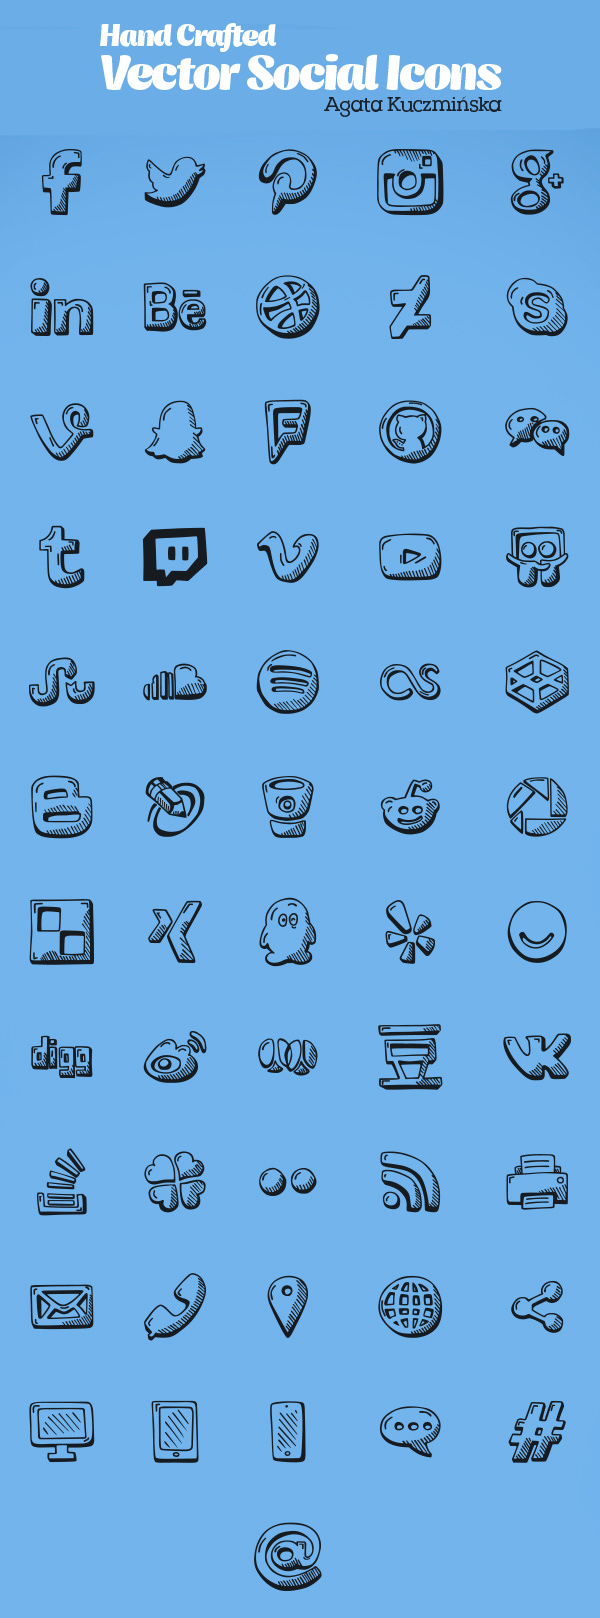 Hand Crafted Vector Social Icon Set (56 Icons)